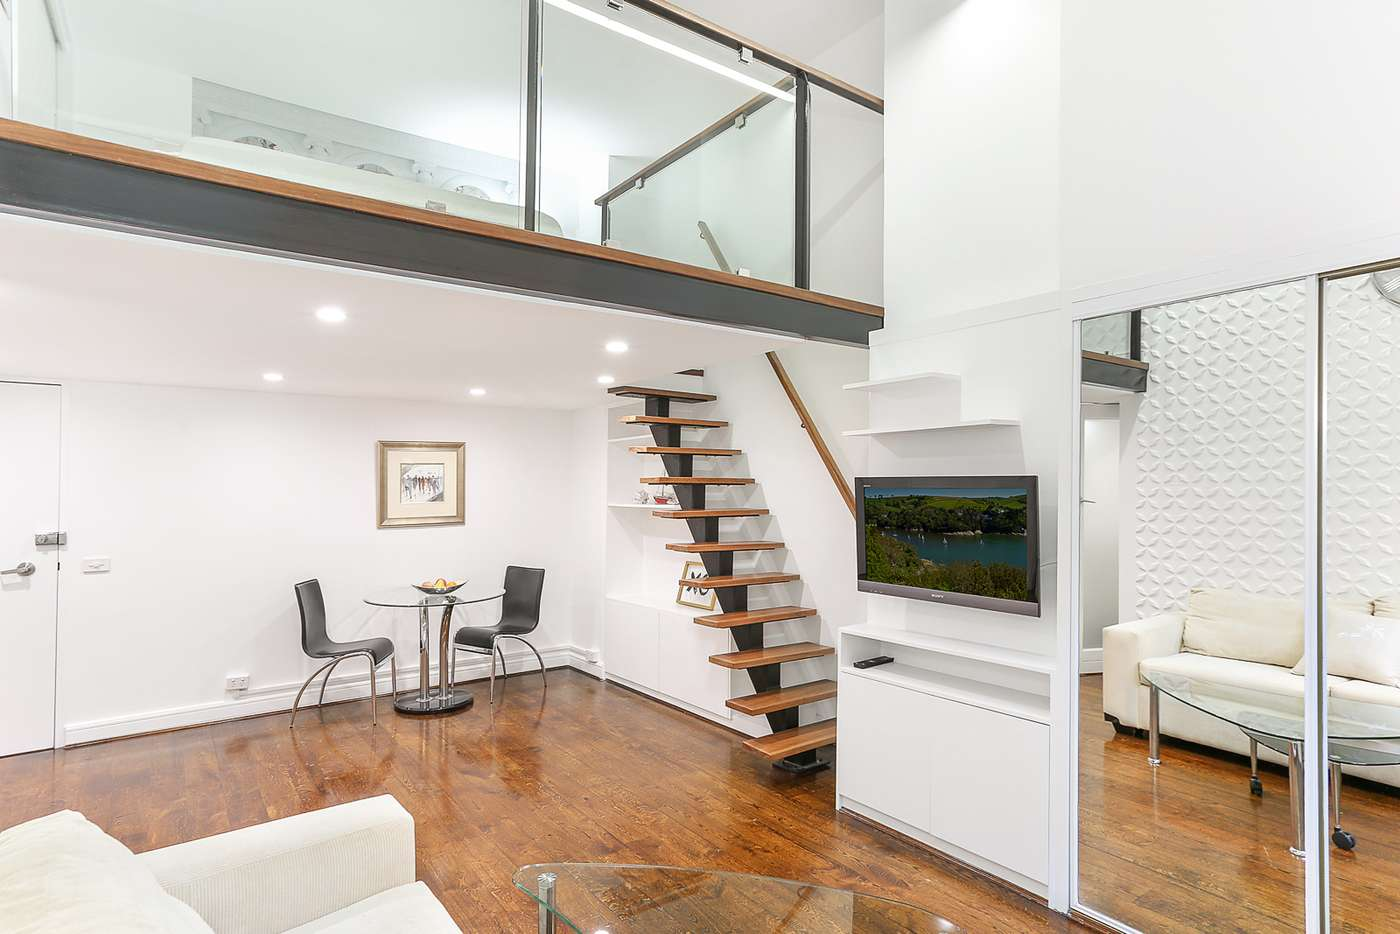 Main view of Homely apartment listing, 4 Bridge St, Sydney, NSW 2000